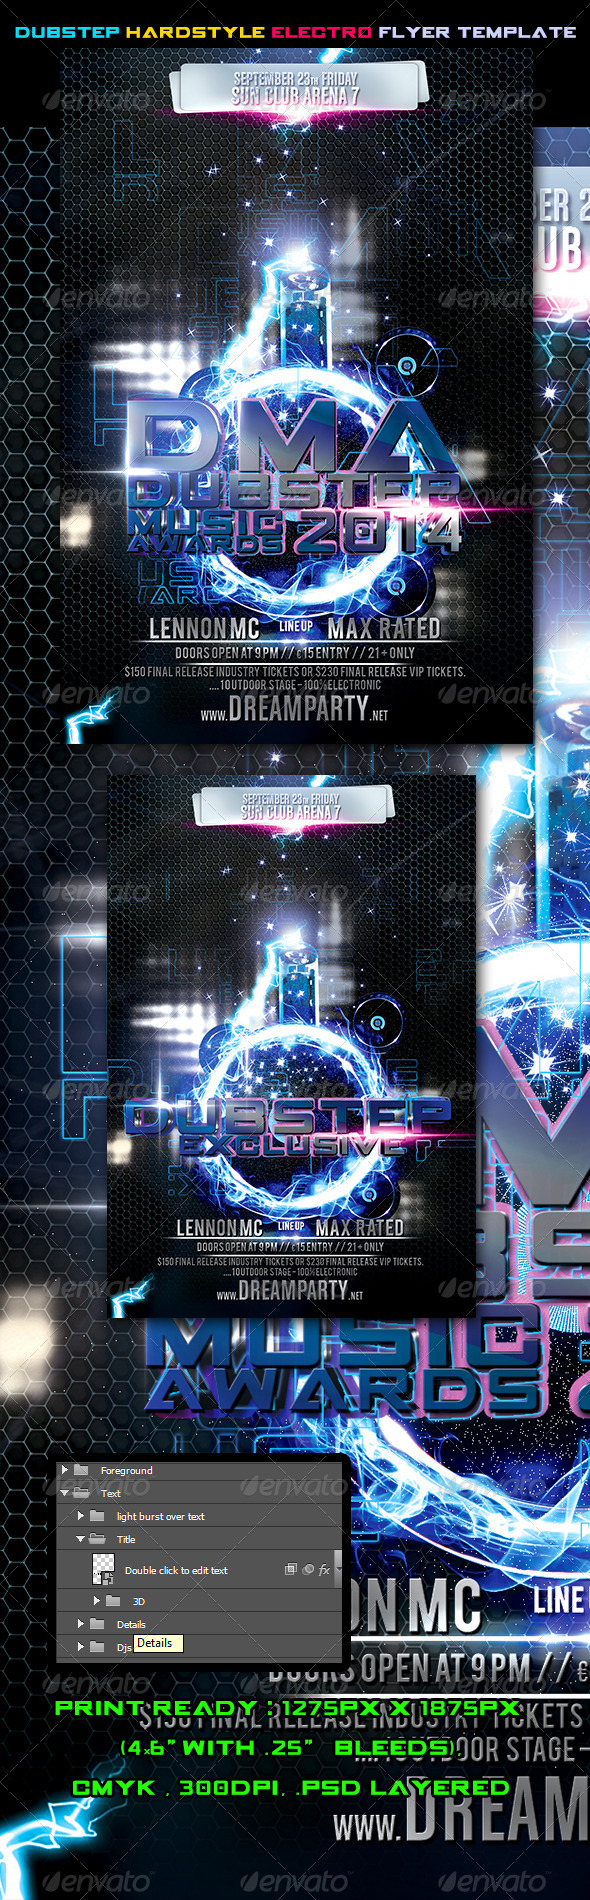 GraphicRiver Dubstep Hardstyle Electro Flyer Template Vol.2 5928607